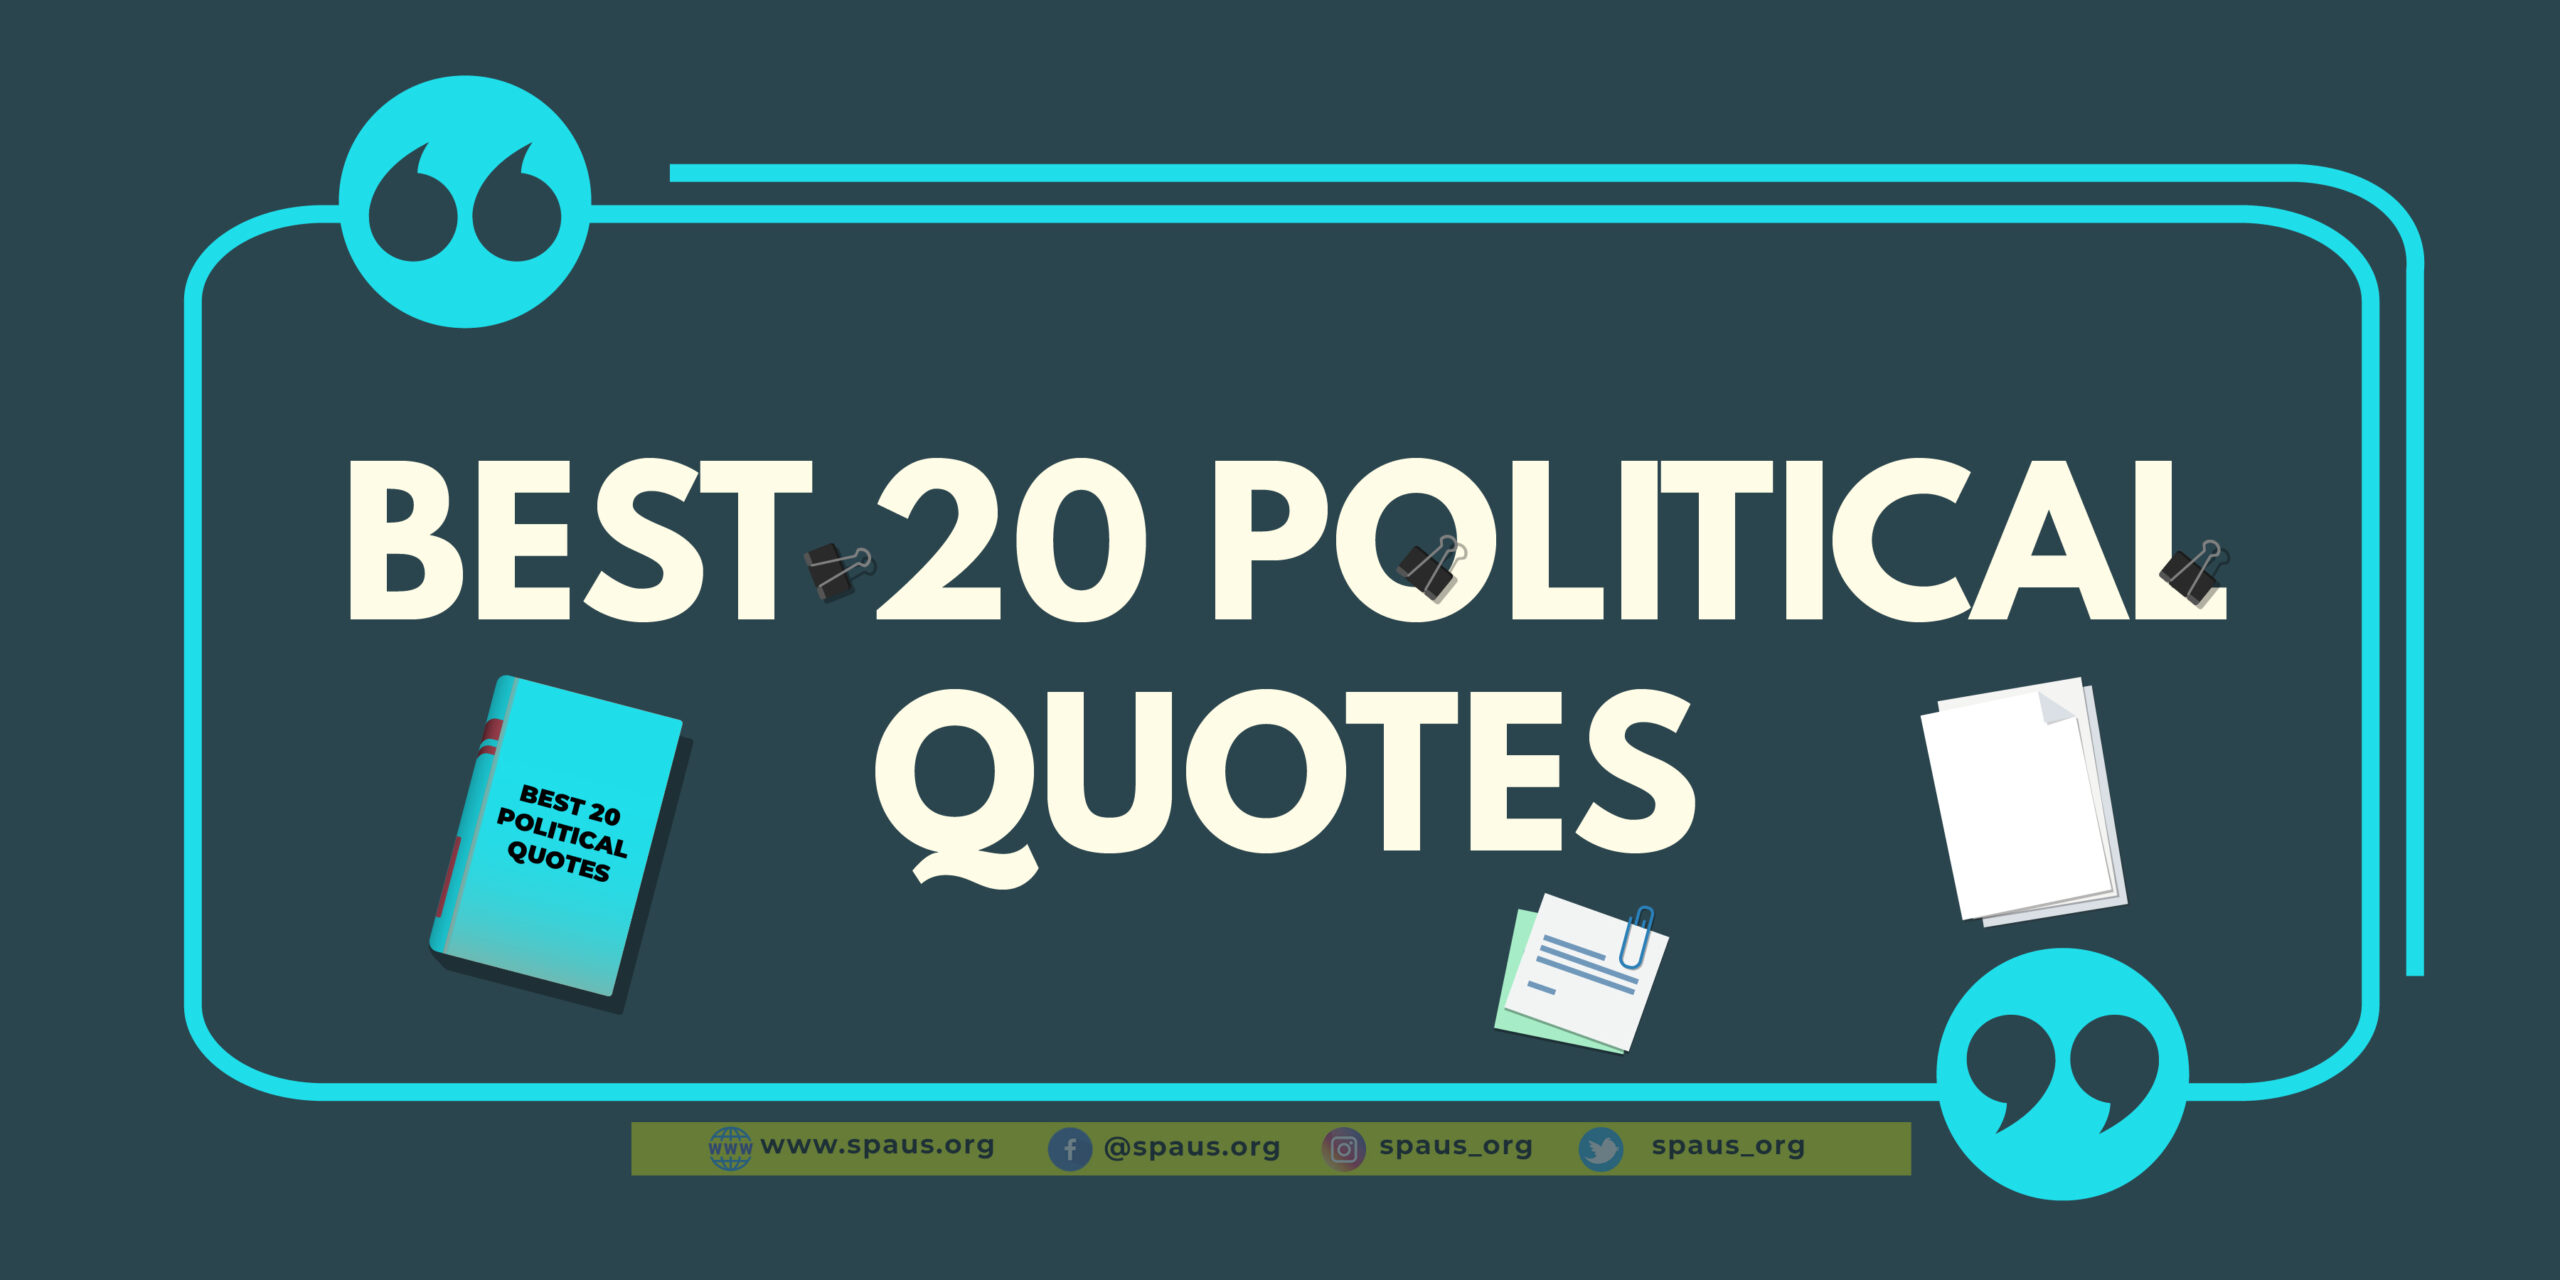 Best 20 Political Quotes